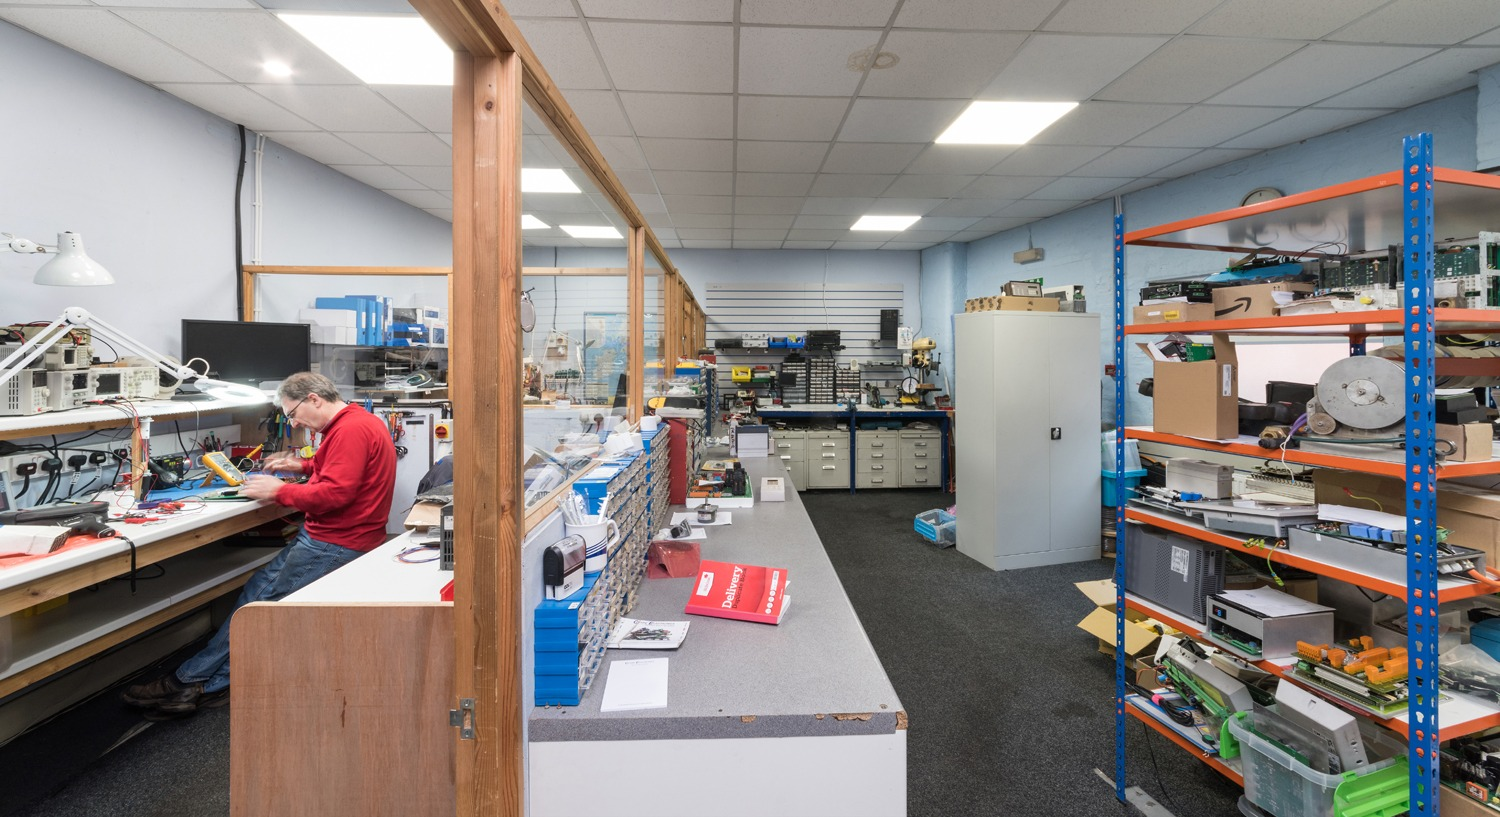 Stirling Enterprise Park Large Work Space Office and Unit Comercial Property